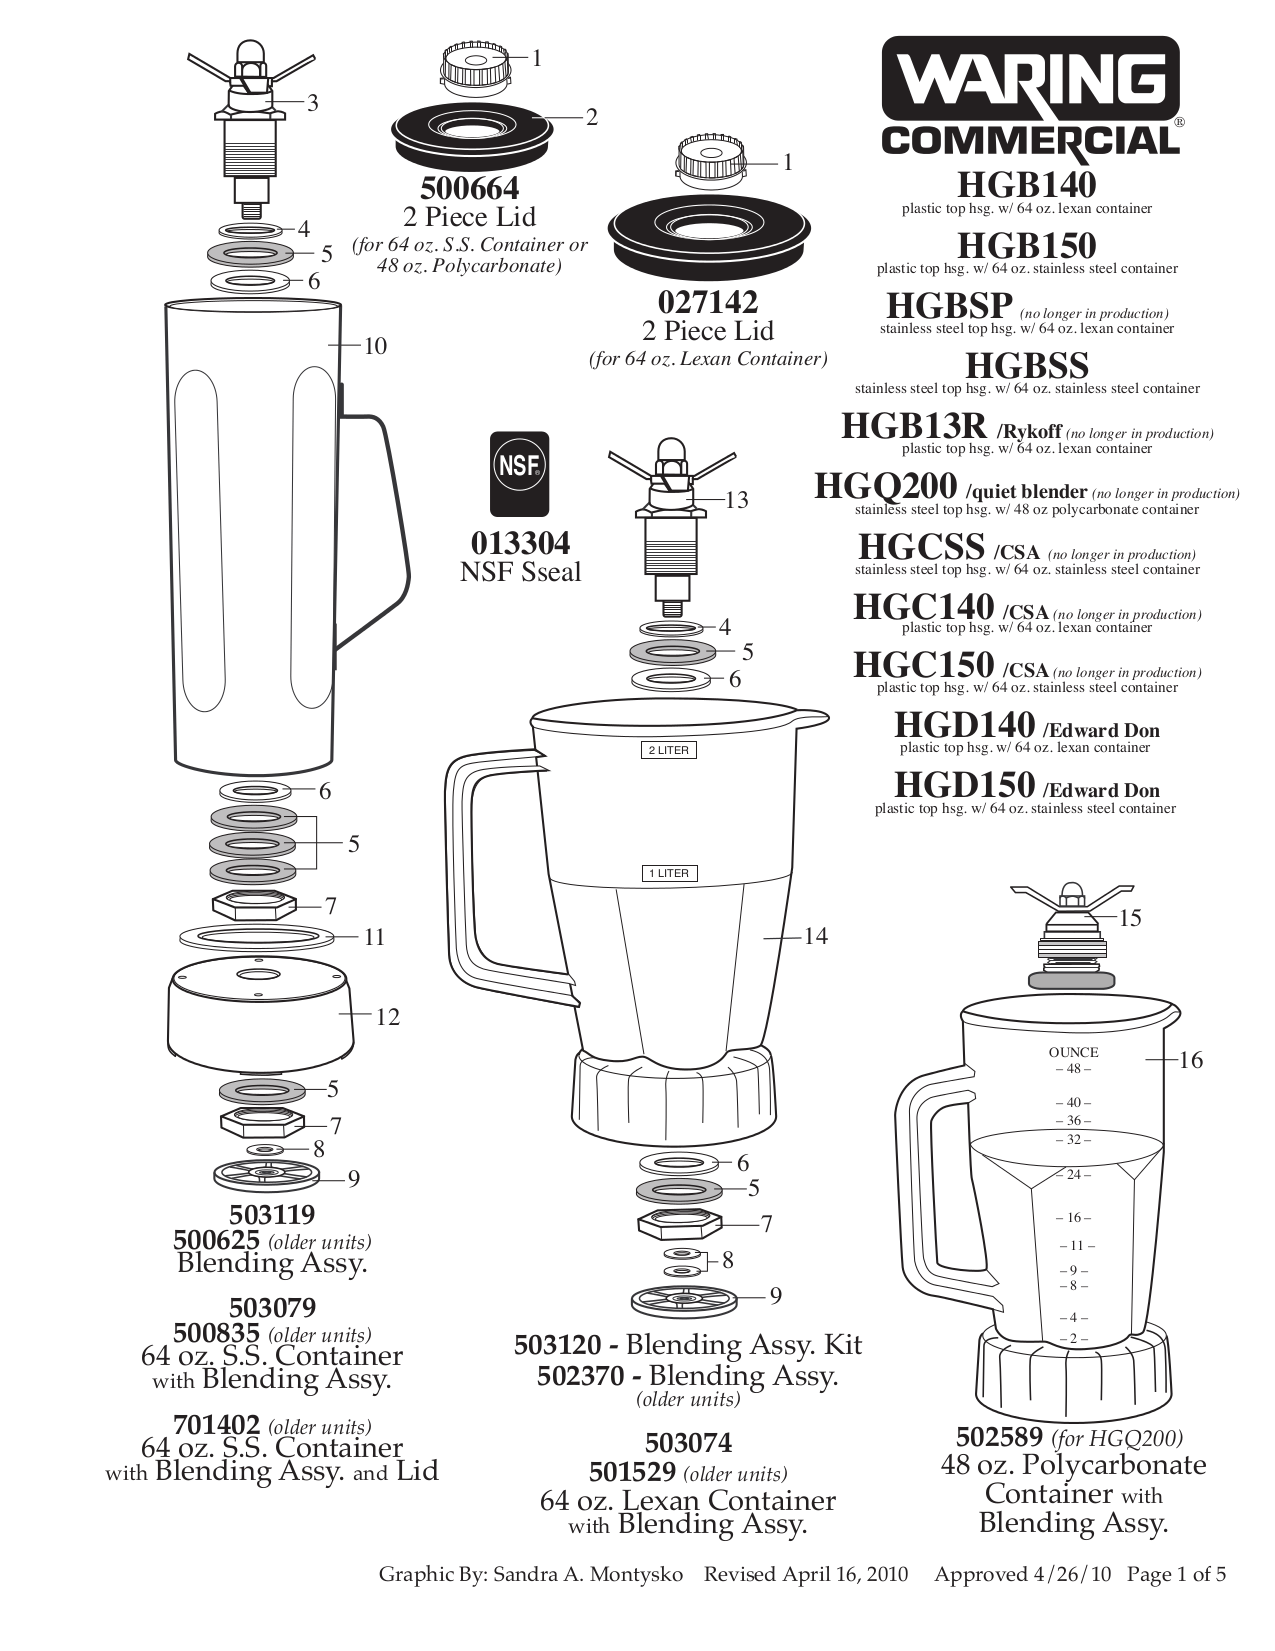 Download free pdf for Waring HGB150 Blender manual